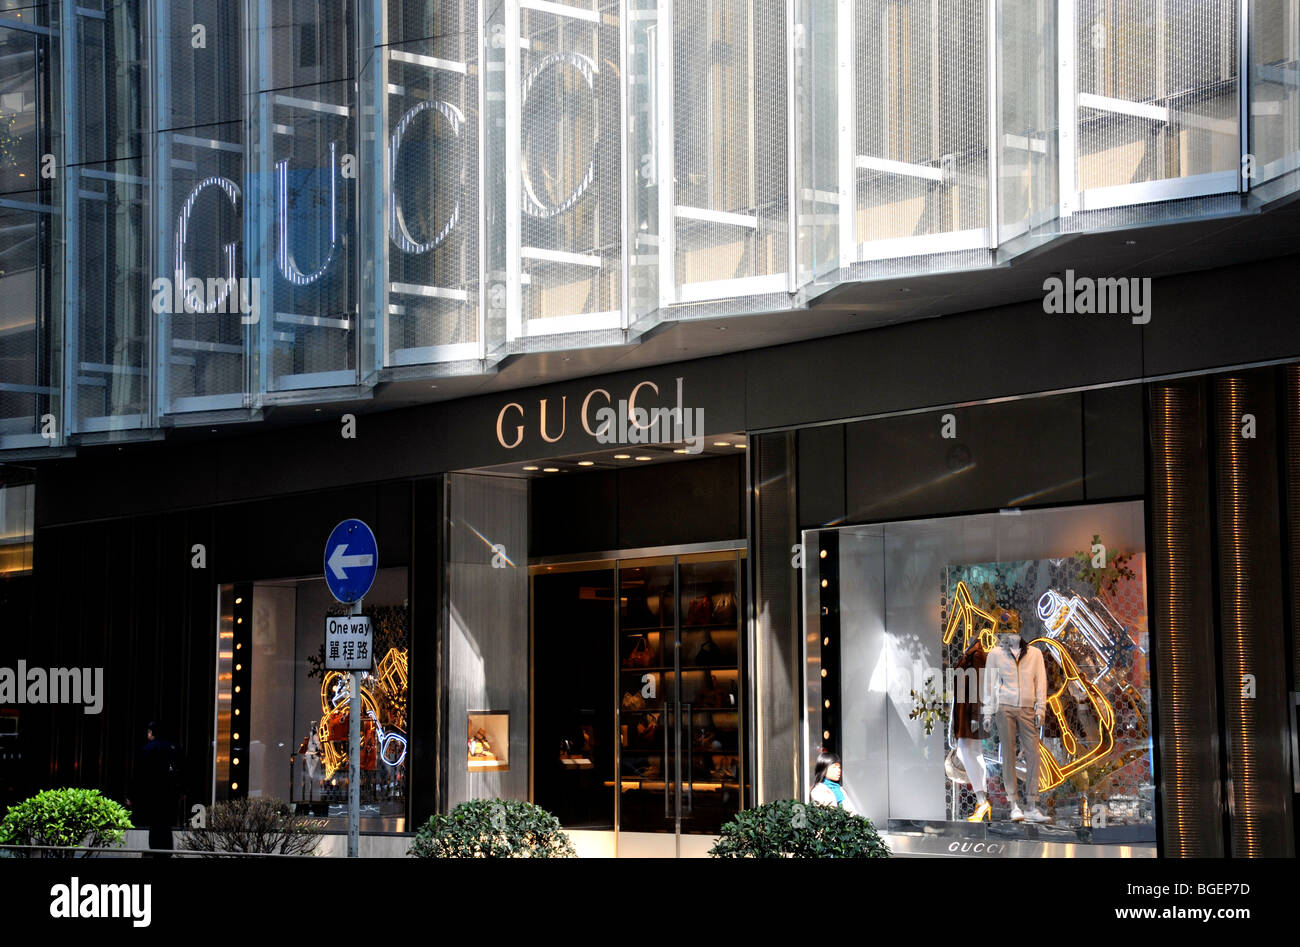 27d2221cce Gucci shop, Hong Kong island, China Stock Photo: 27369649 - Alamy